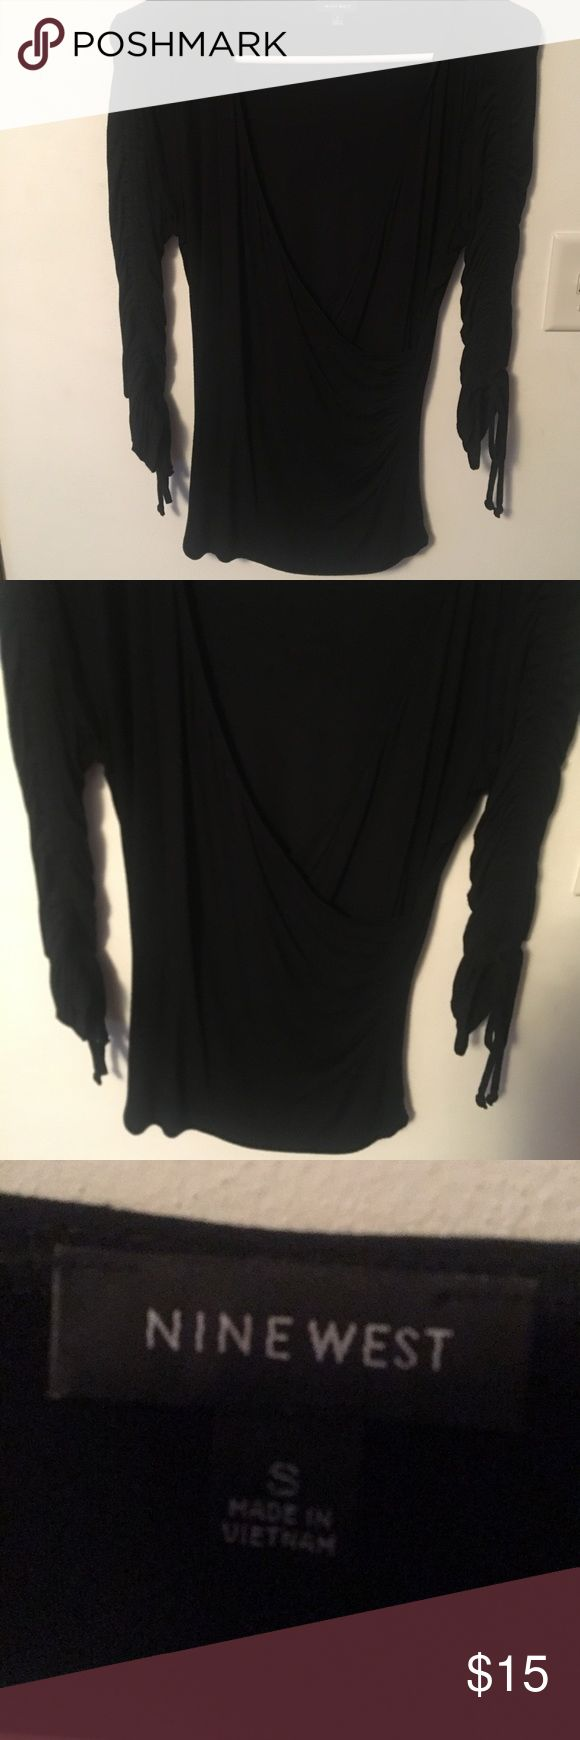 Nine West shirt Size small Nine West long sleeve.  Sleeves don't come all the way down to wrist.  Sleeve also tie at the bottom.  Shirt looks like a wrap around but isn't. Nine West Tops Blouses